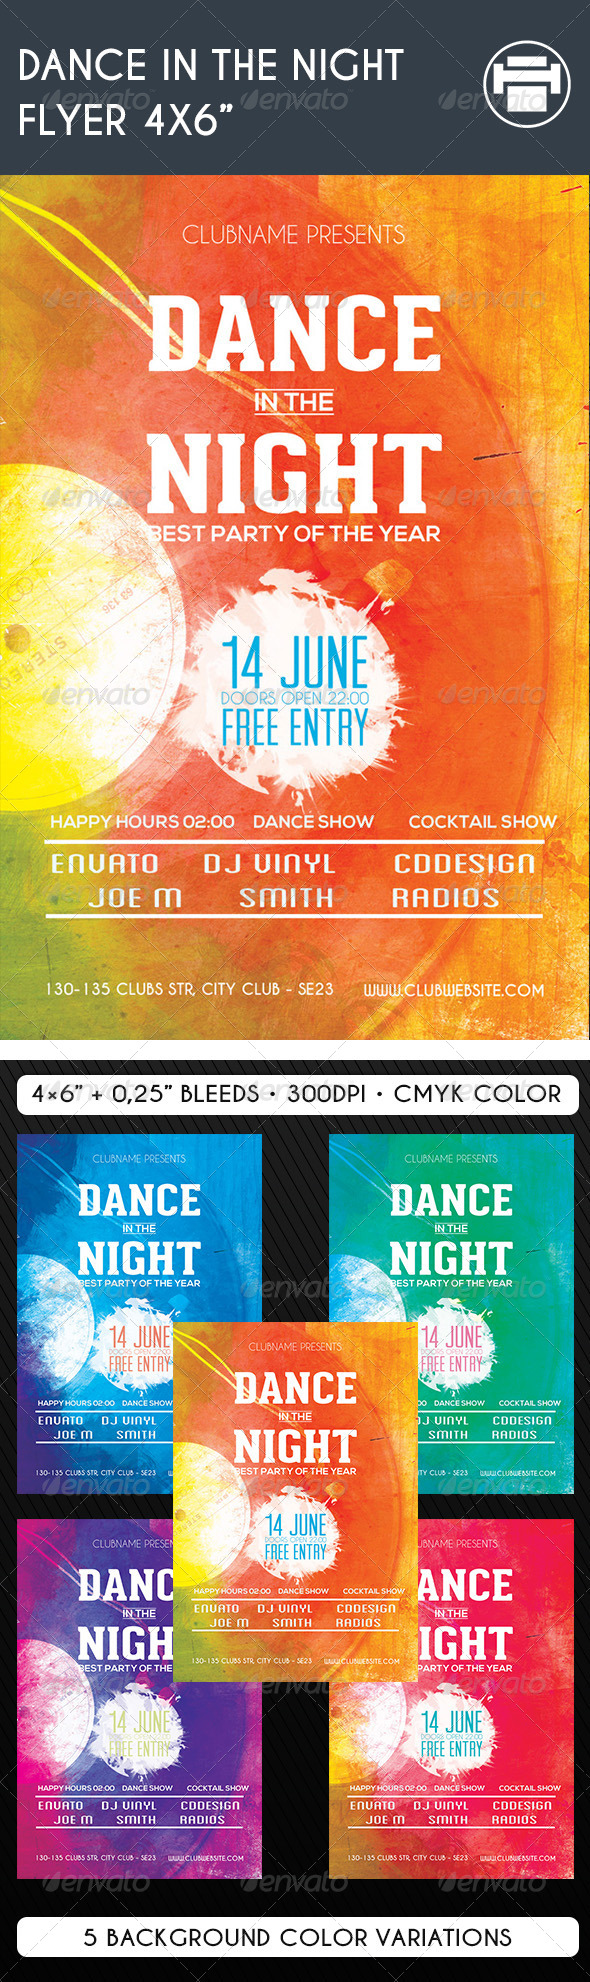 GraphicRiver Dance in the Night Flyer 4x6 8099666